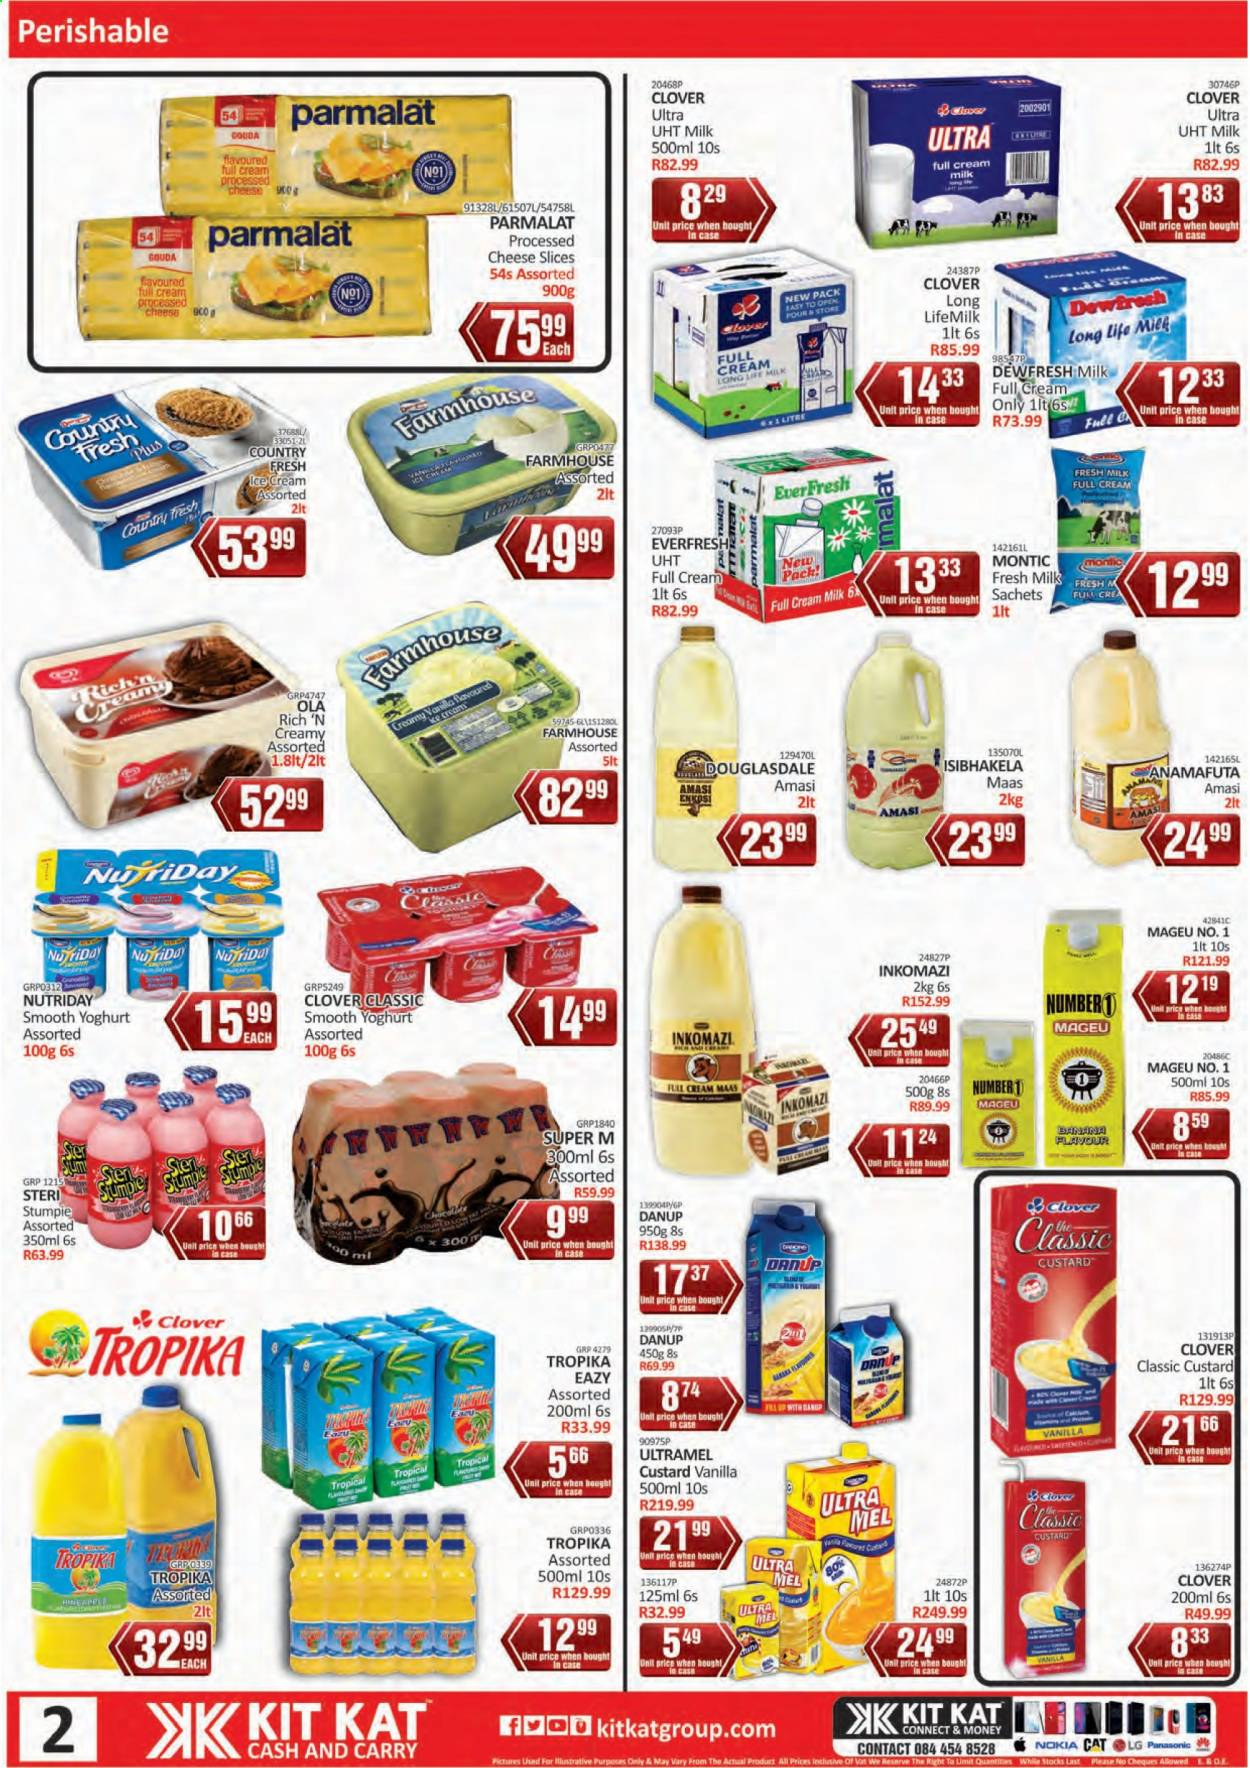 Kit Kat Cash & Carry catalogue  - 02.11.2021 - 05.12.2021. Page 2.